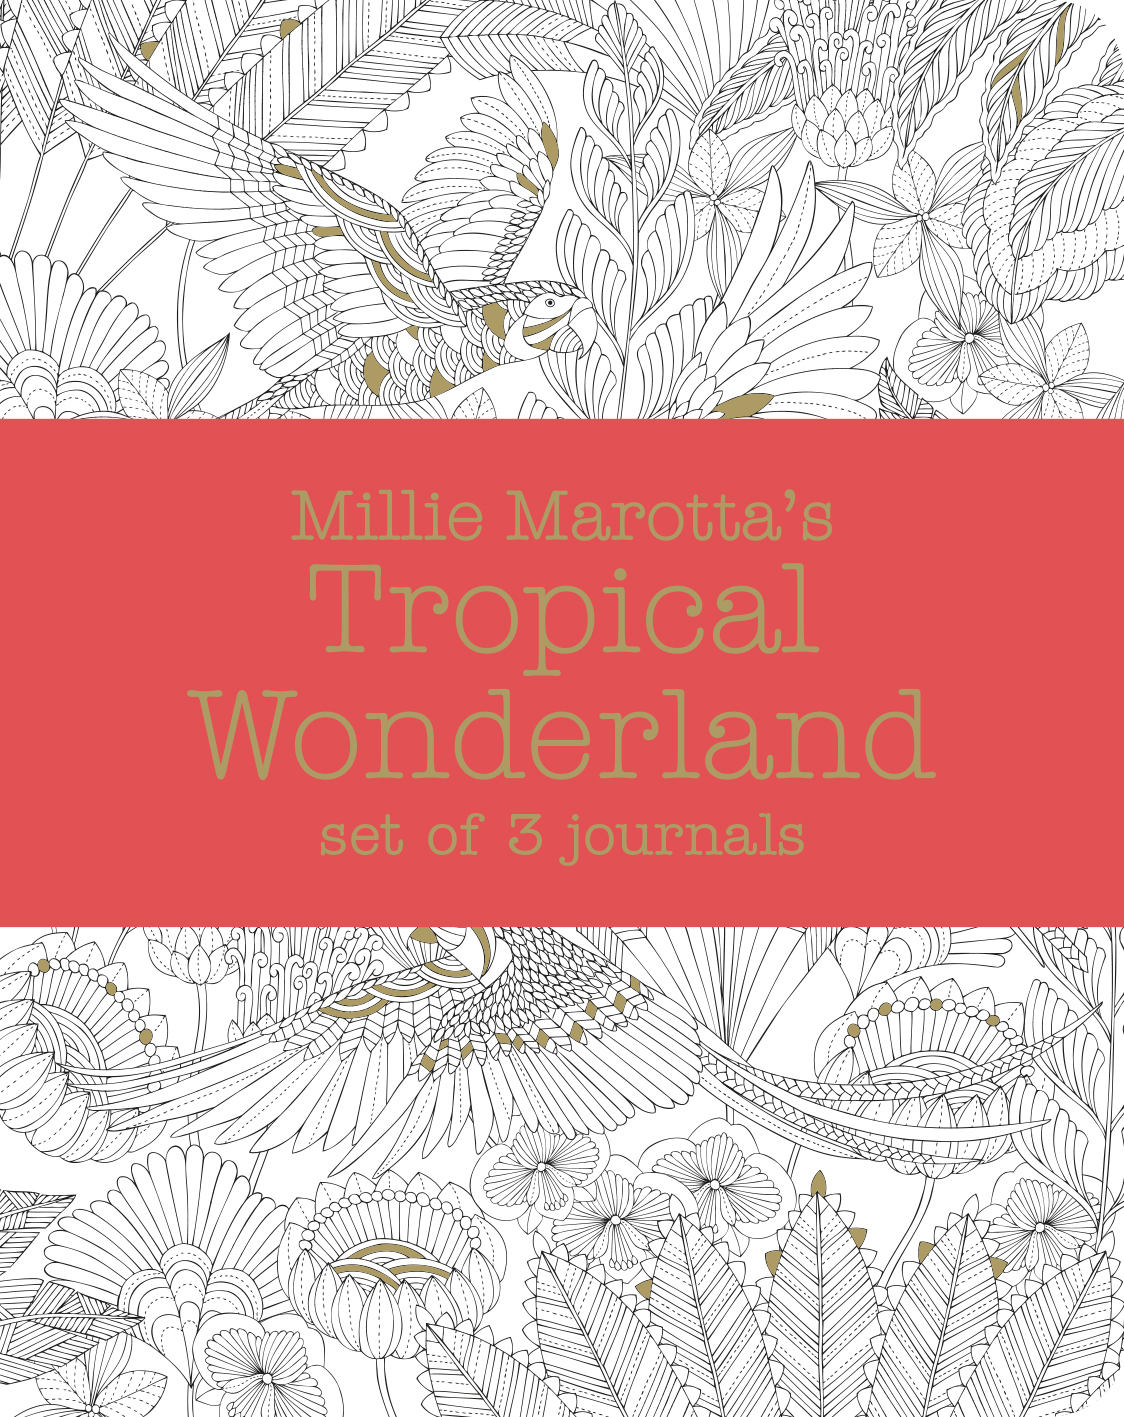 Millie Marotta's Tropical Wonderland – journal set